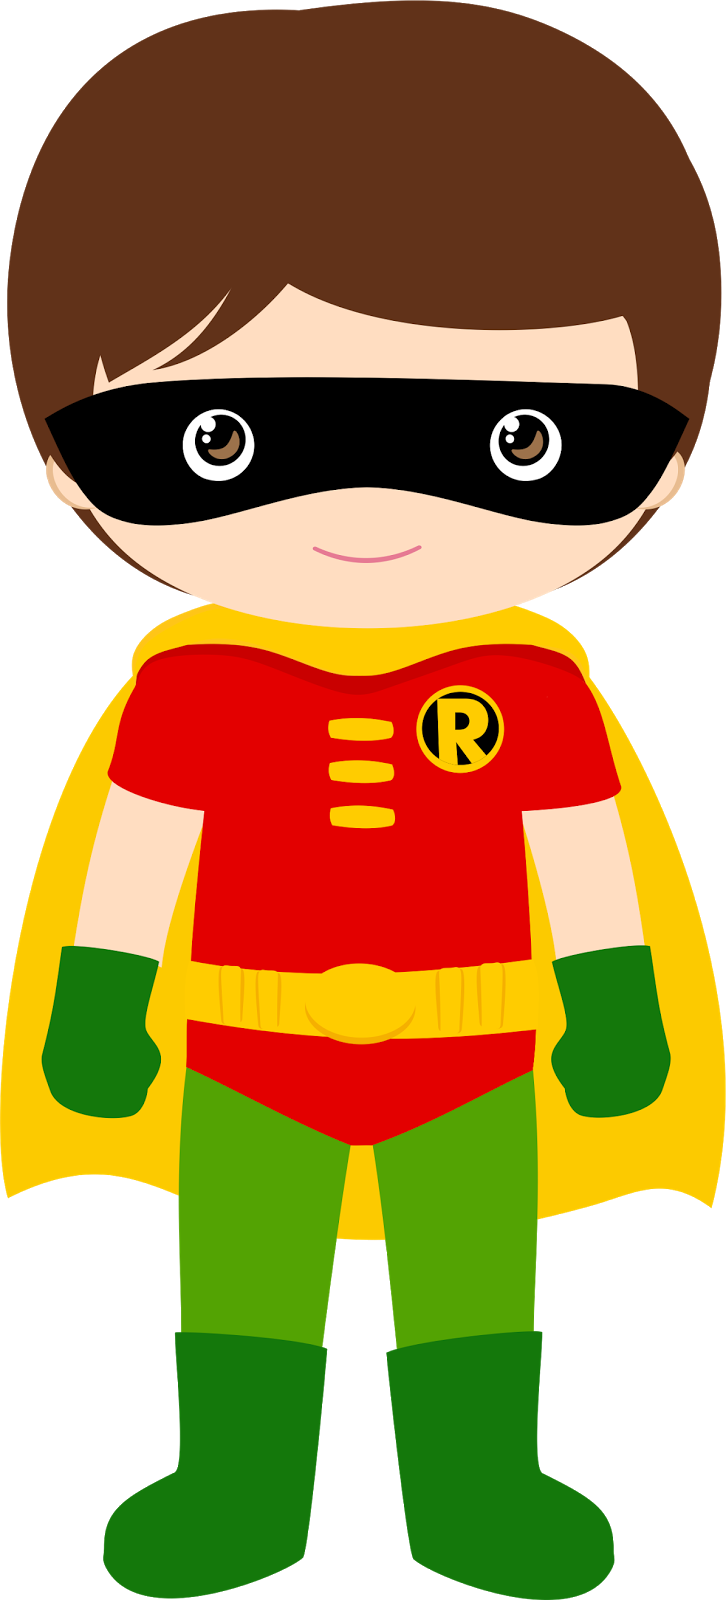 characters of batman kids version clip art super hero pinterest rh pinterest com batman and robin logo clipart